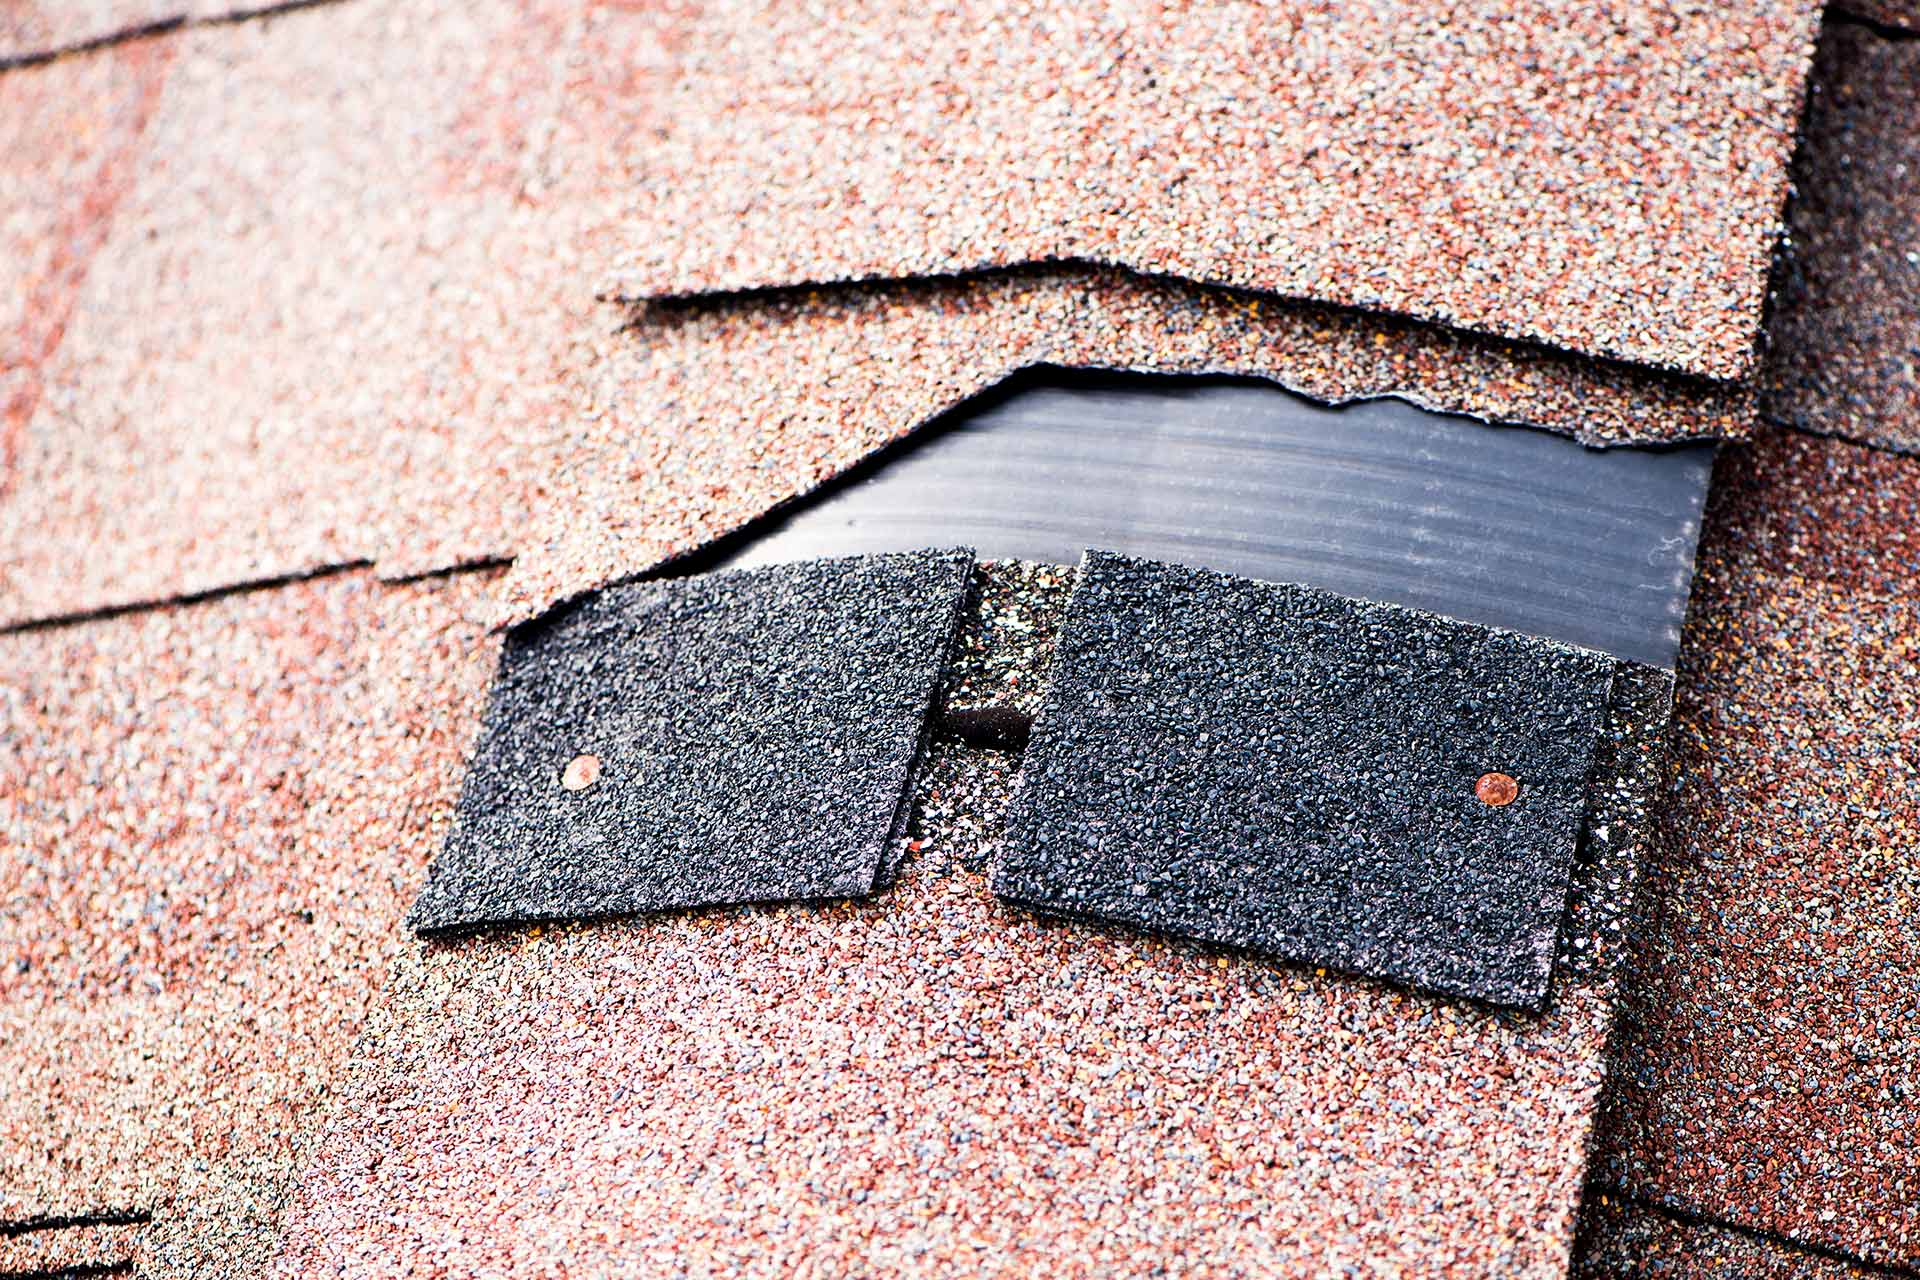 Damaged roof shingles on a home in Lakeland, FL.